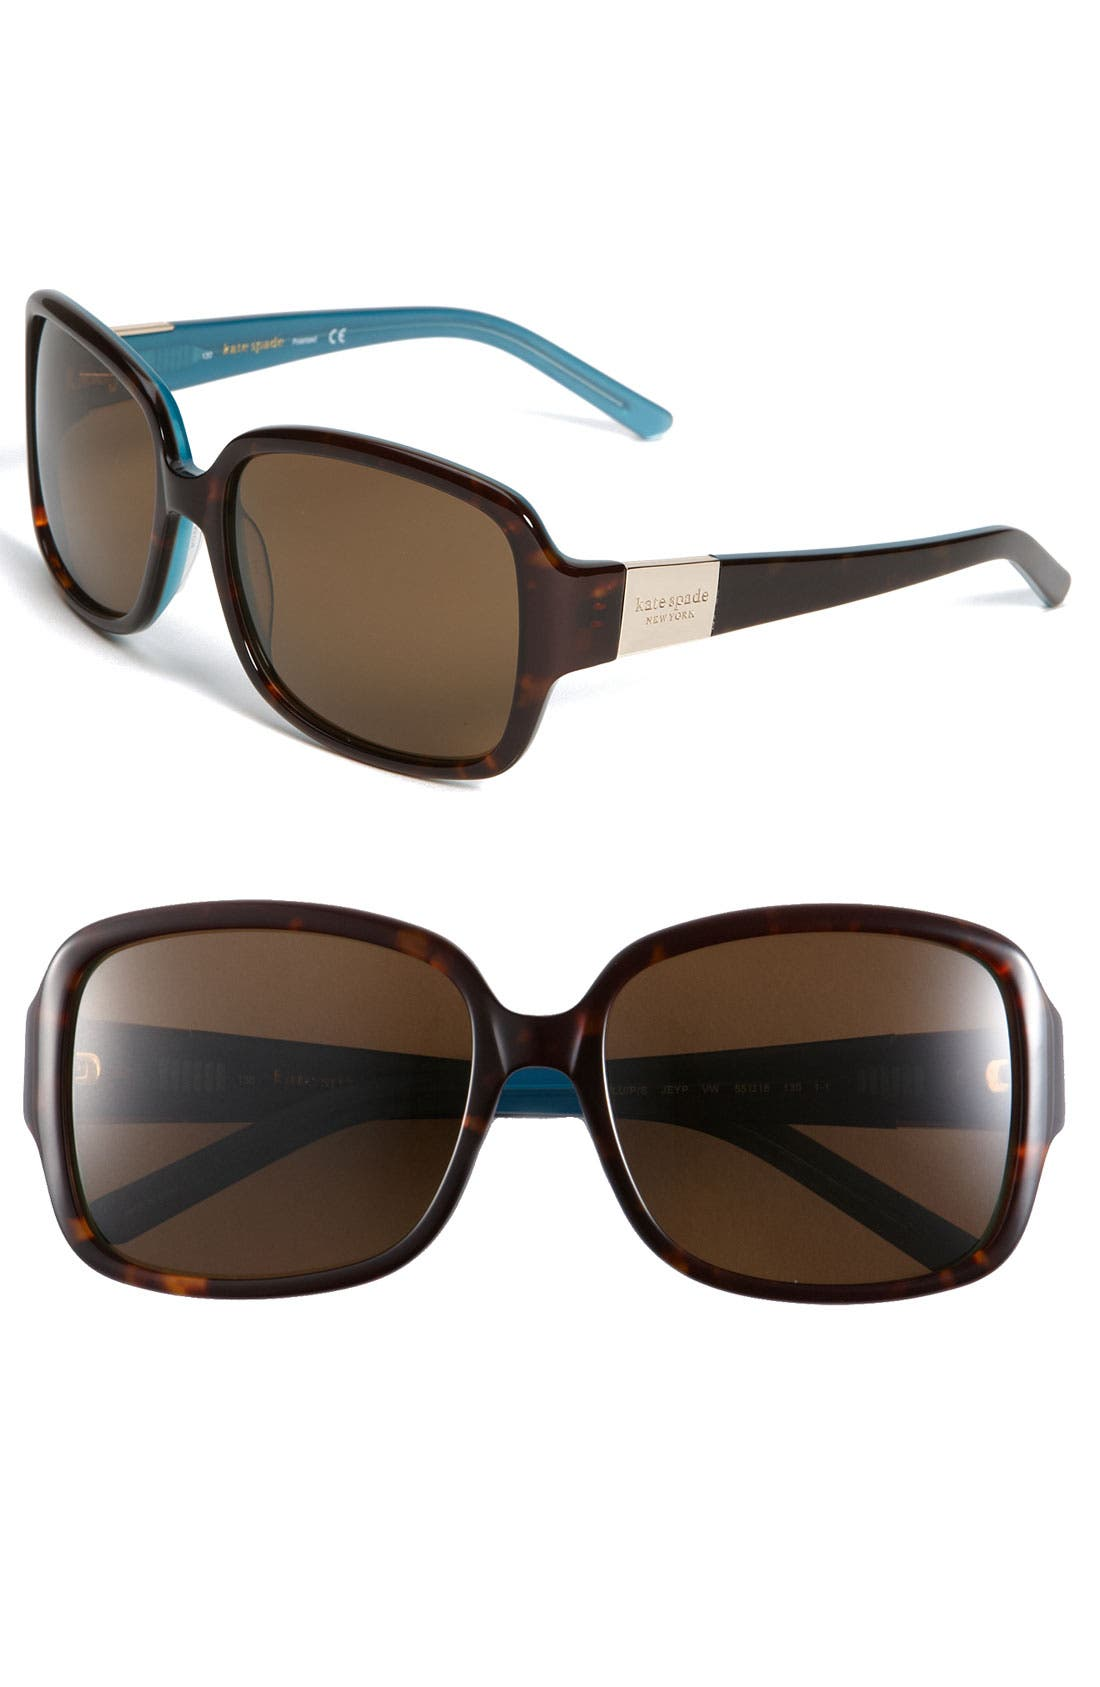 Alternate Image 1 Selected - kate spade new york 'lulu/p/s' 55mm polarized square sunglasses